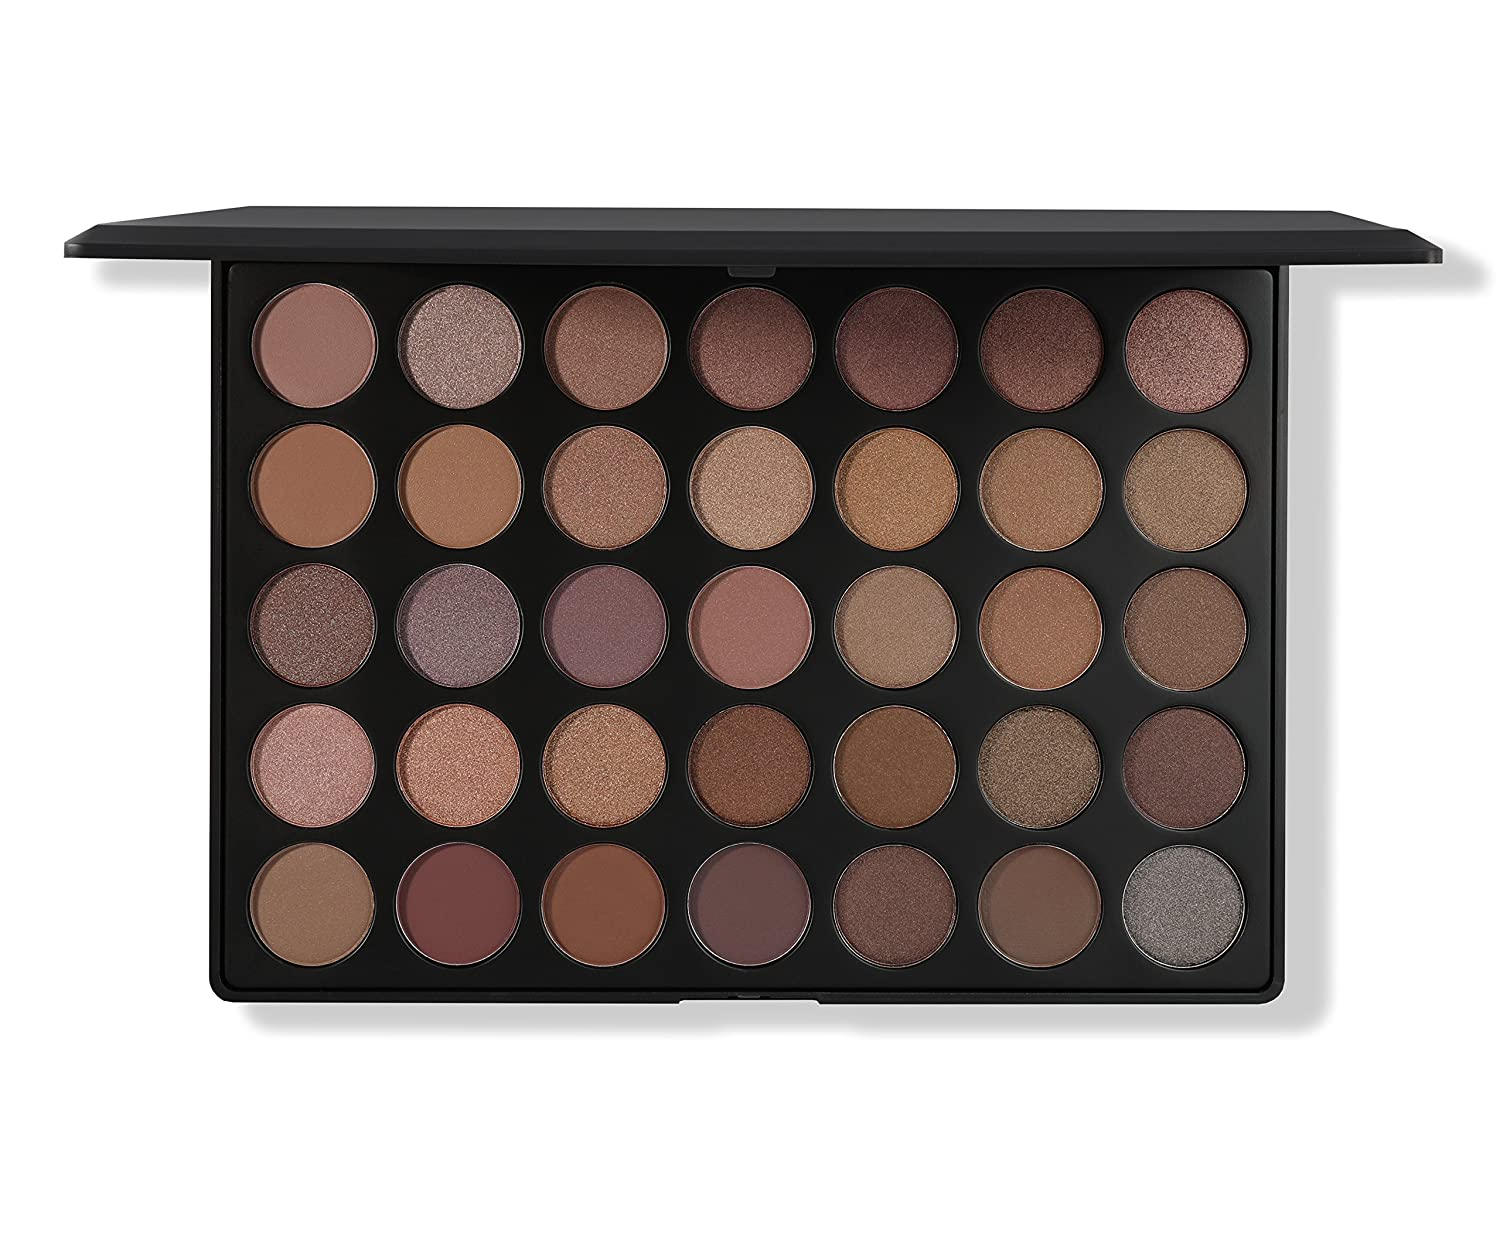 Morphe Pro 35 Gorgeous Color Eyeshadow 35T Taupe Large-scale sale Makeup - Palette